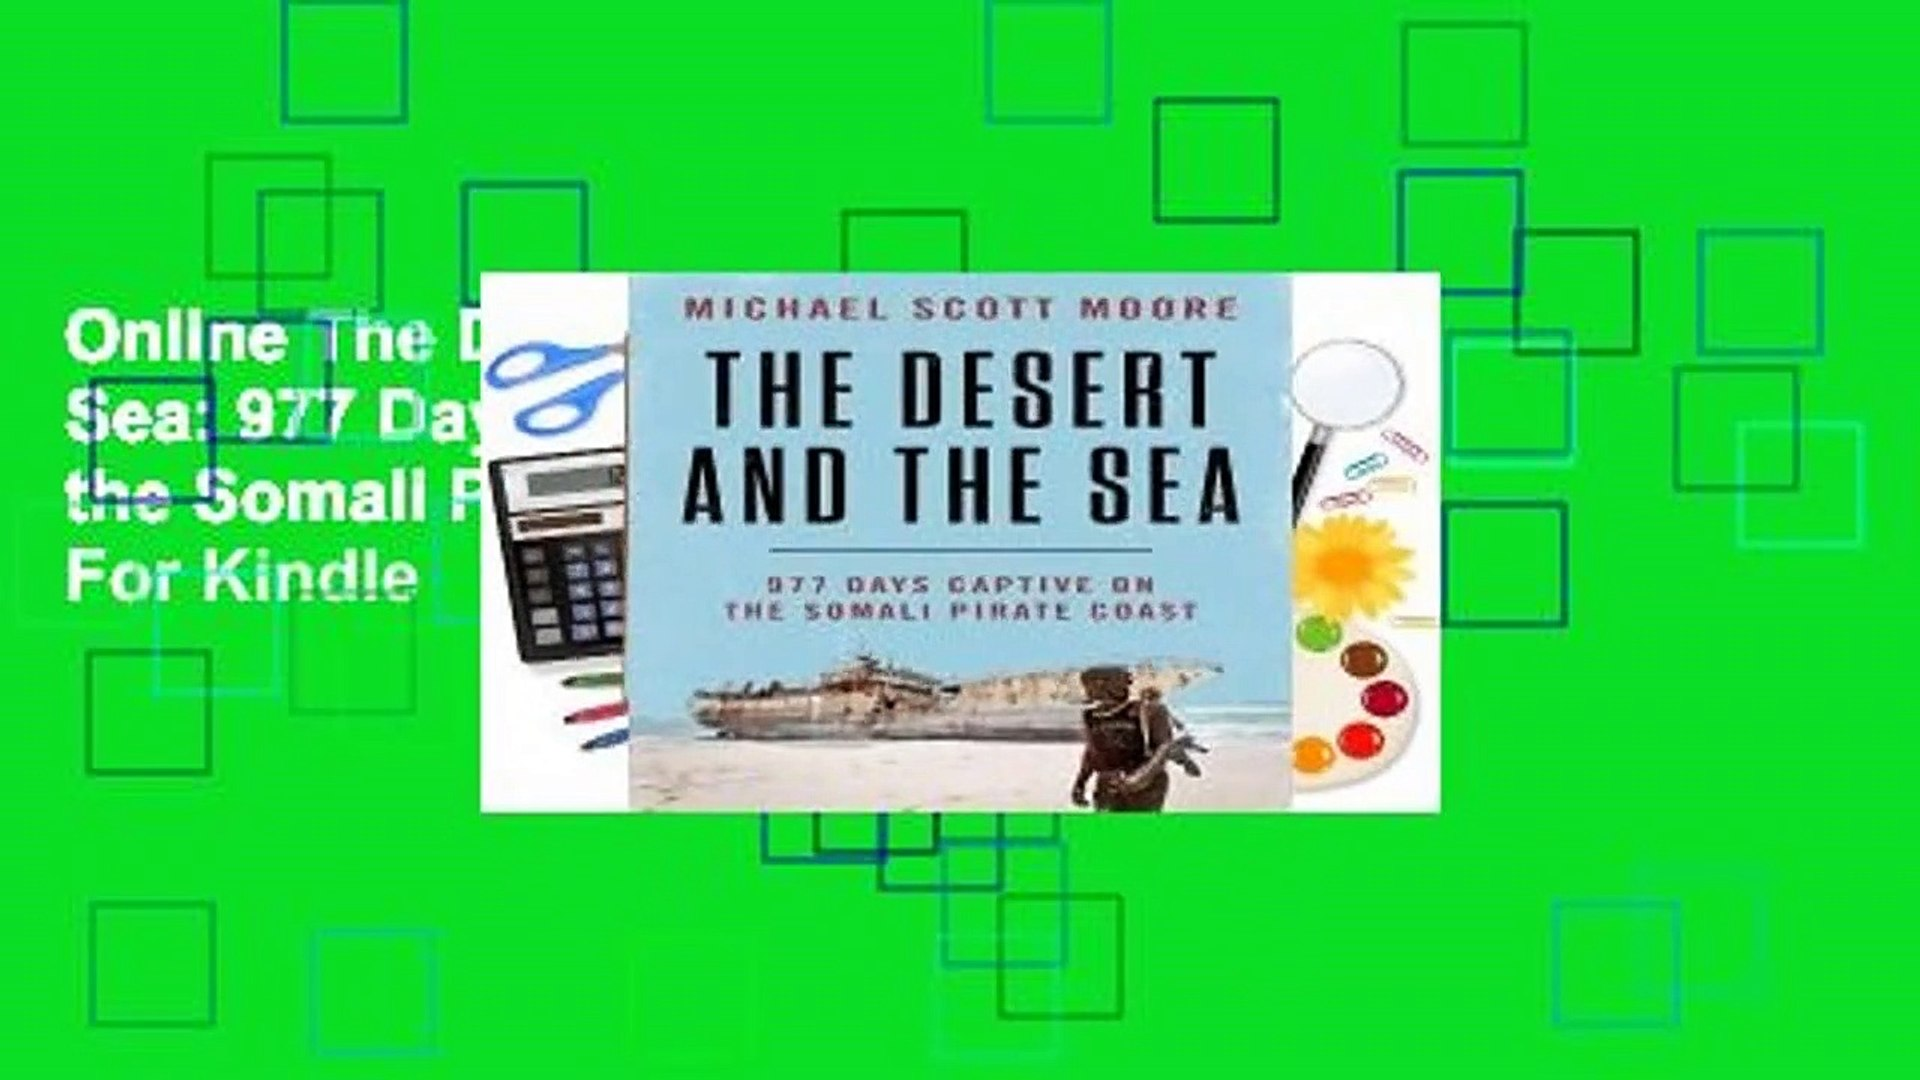 Online The Desert and the Sea: 977 Days Captive on the Somali Pirate Coast  For Kindle